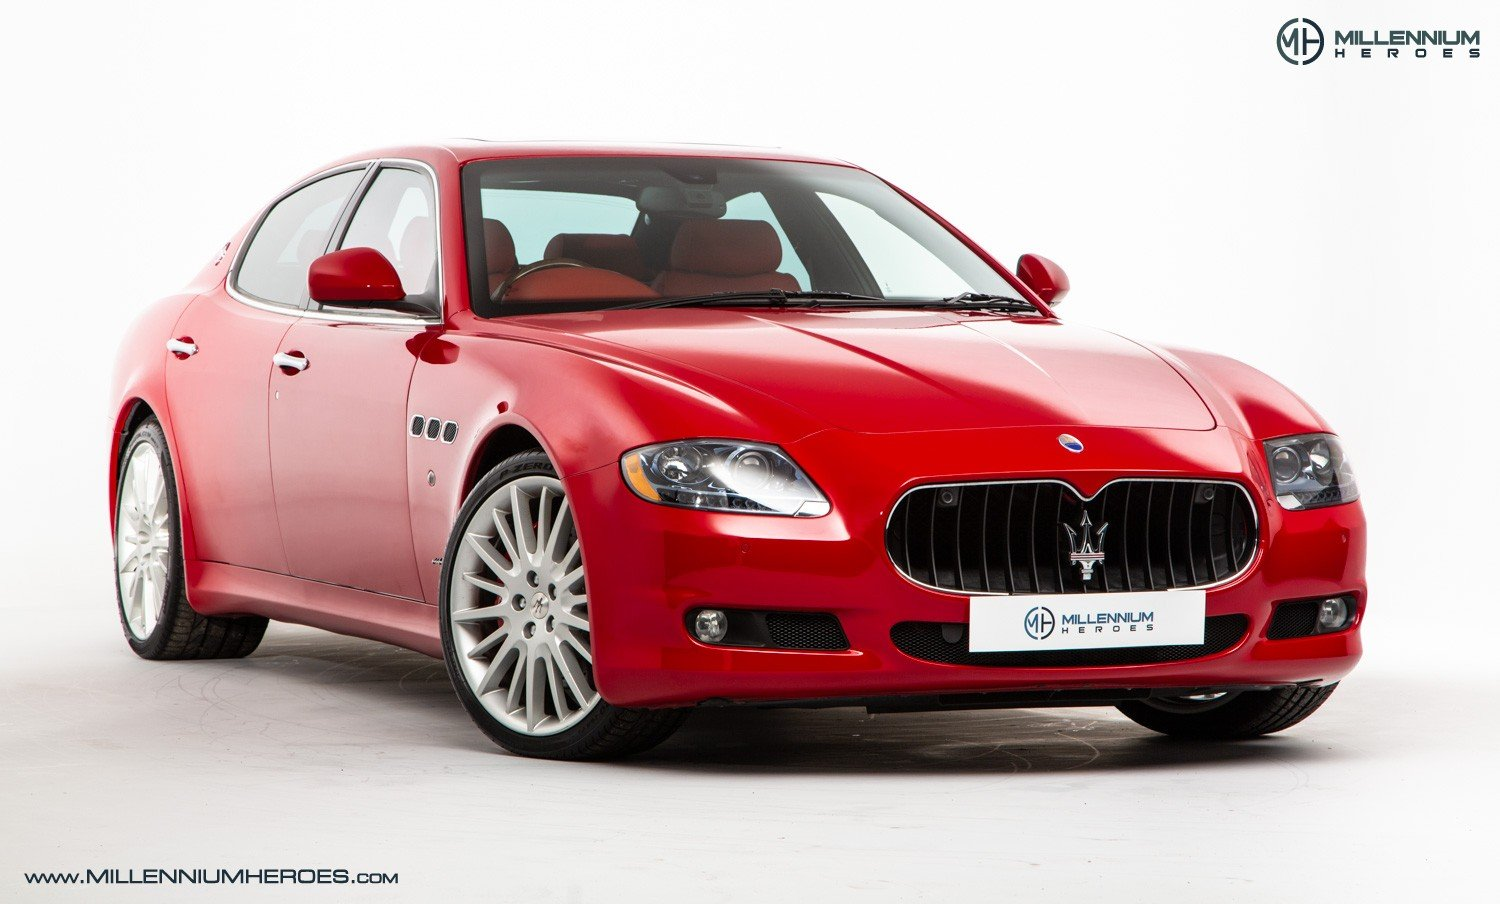 2010 MASERATI QUATTROPORTE 4.7 GTS // SPECIAL PAINT ROSSO MONDIAL For Sale (picture 2 of 6)